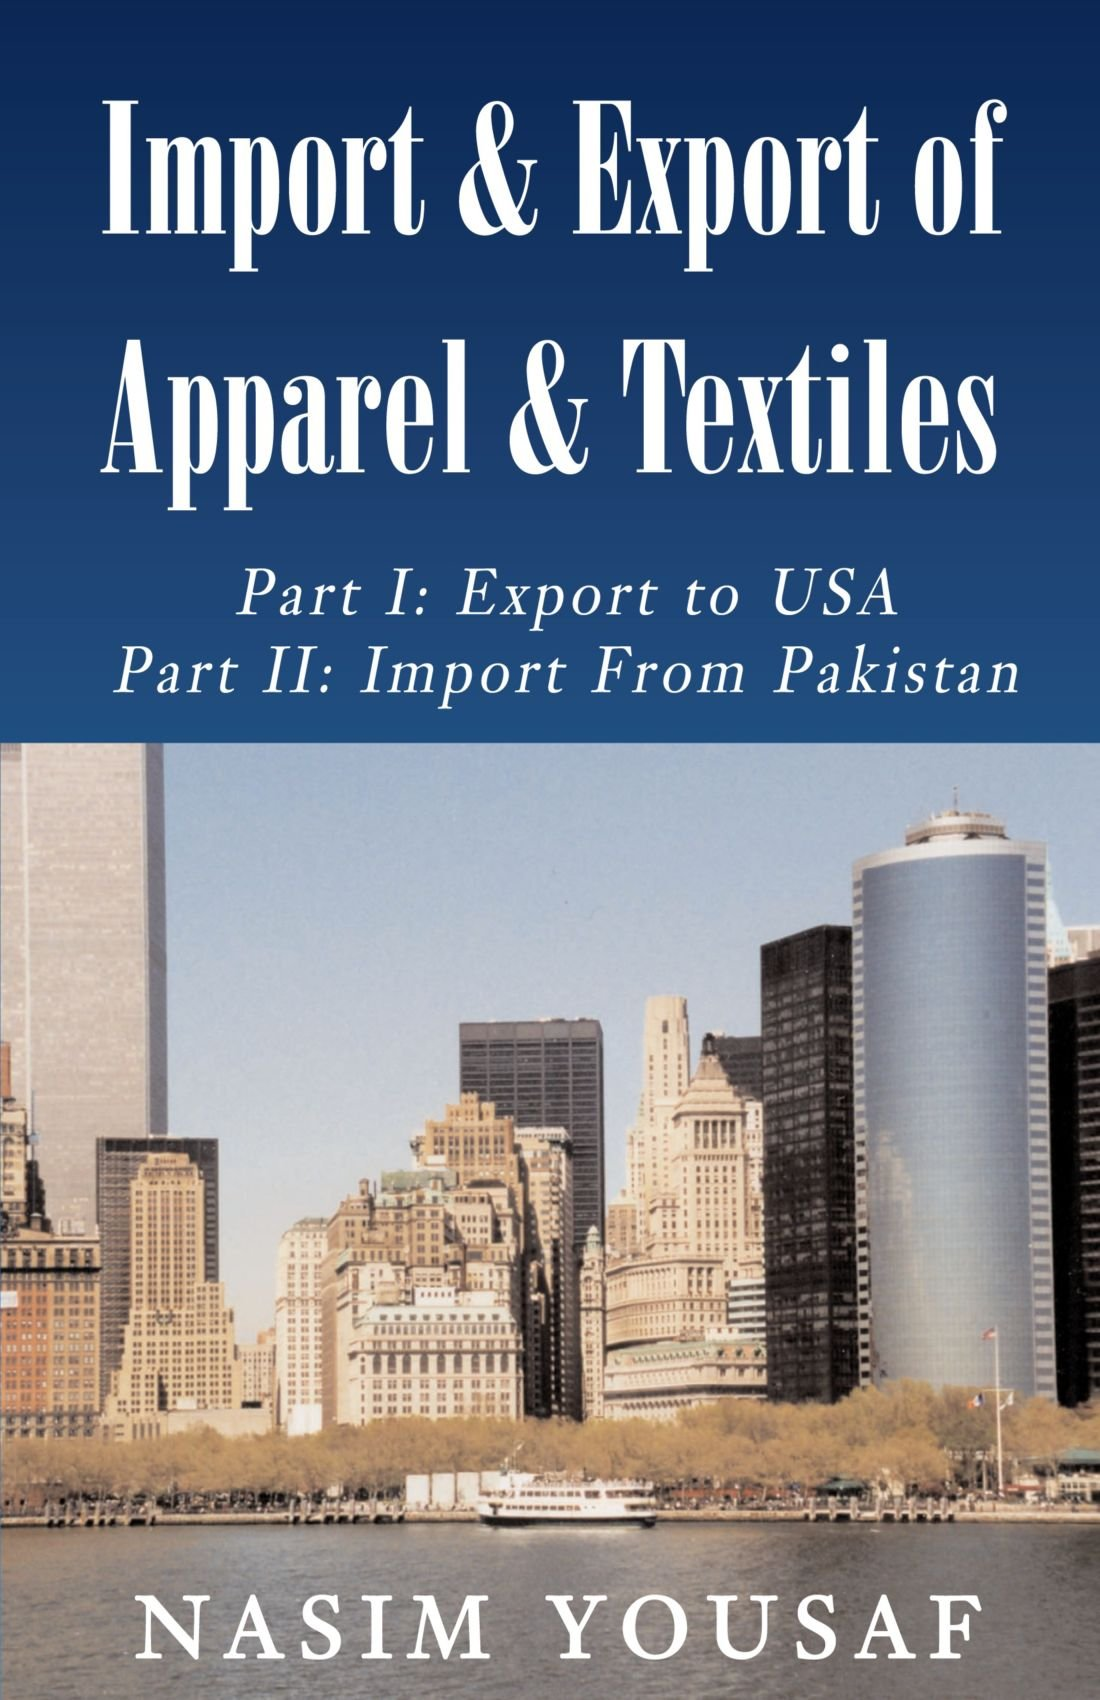 Import & Export of Apparel & Textiles: Part I: Export to the US Part II: Import From Pakistan